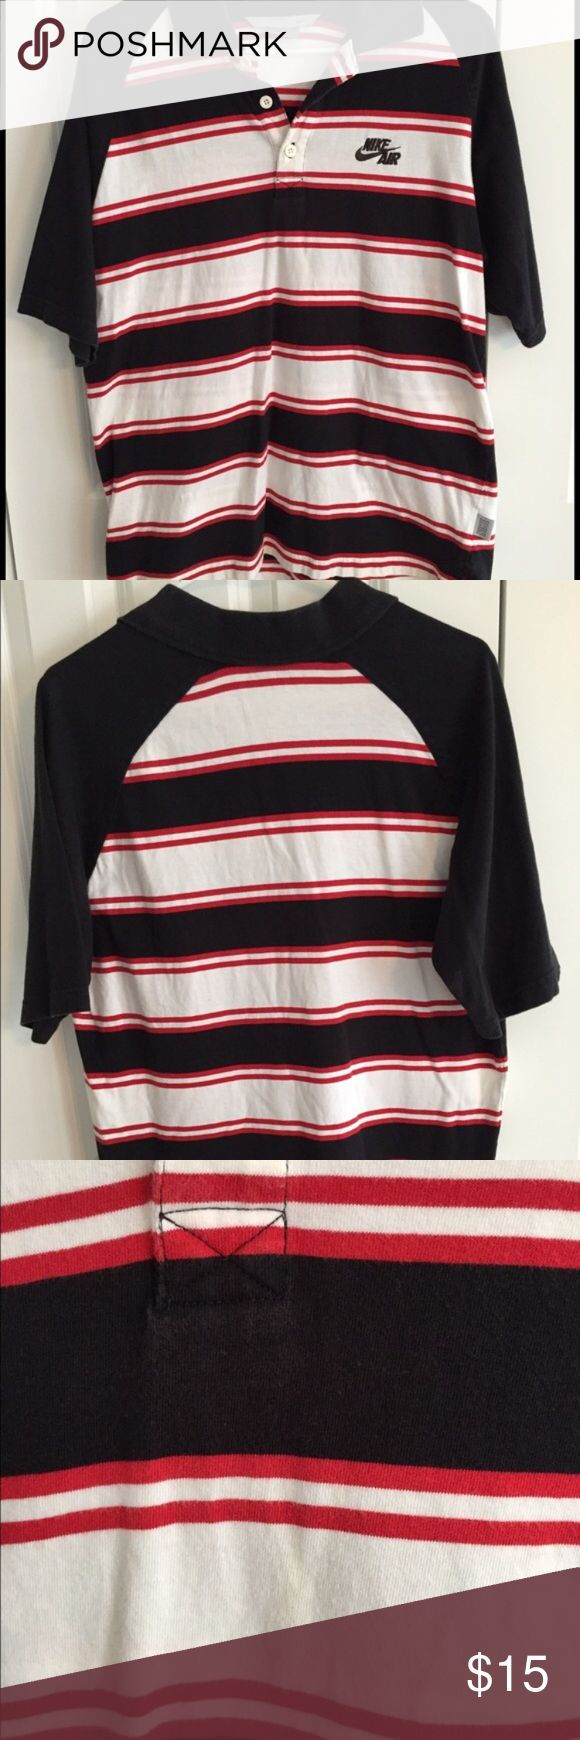 Men's Nike Polo Shirt Black, red and white striped men's Nike Air polo shirt. Very faint yellowish stain on front in the center - at bottom stripe in photo #3. Some normal wash wear/slight graying of collar as seen in photo #4. 100% Cotton. Smoke free/pet free home. Nike Shirts Polos